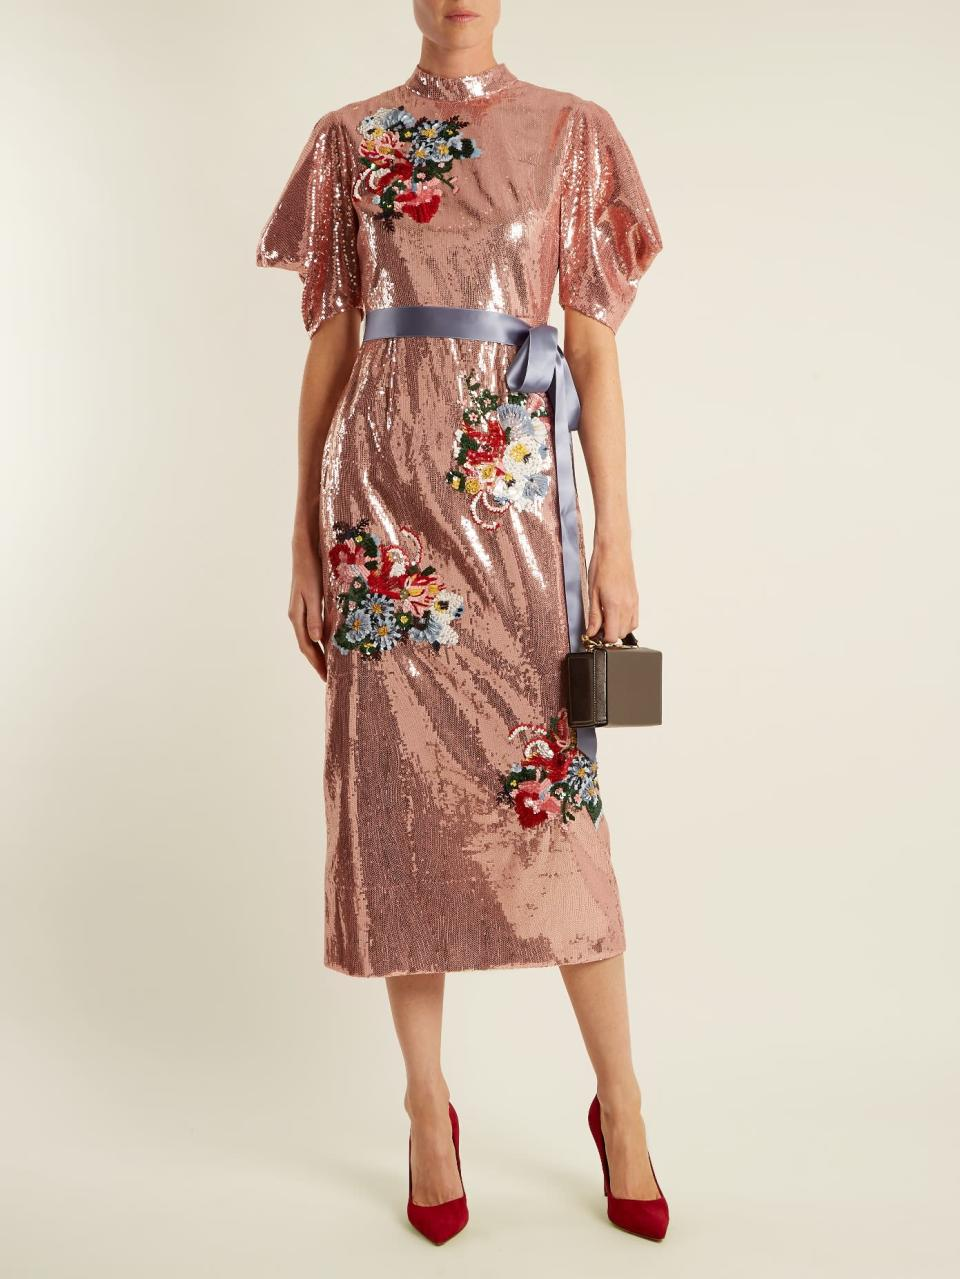 """<p><em>$4,370, Matches Fashion</em></p><p><a rel=""""nofollow noopener"""" href=""""https://www.matchesfashion.com/us/products/Erdem-Emery-floral-embroidered-sequin-dress-1157075"""" target=""""_blank"""" data-ylk=""""slk:Buy Now"""" class=""""link rapid-noclick-resp"""">Buy Now</a><br></p>"""